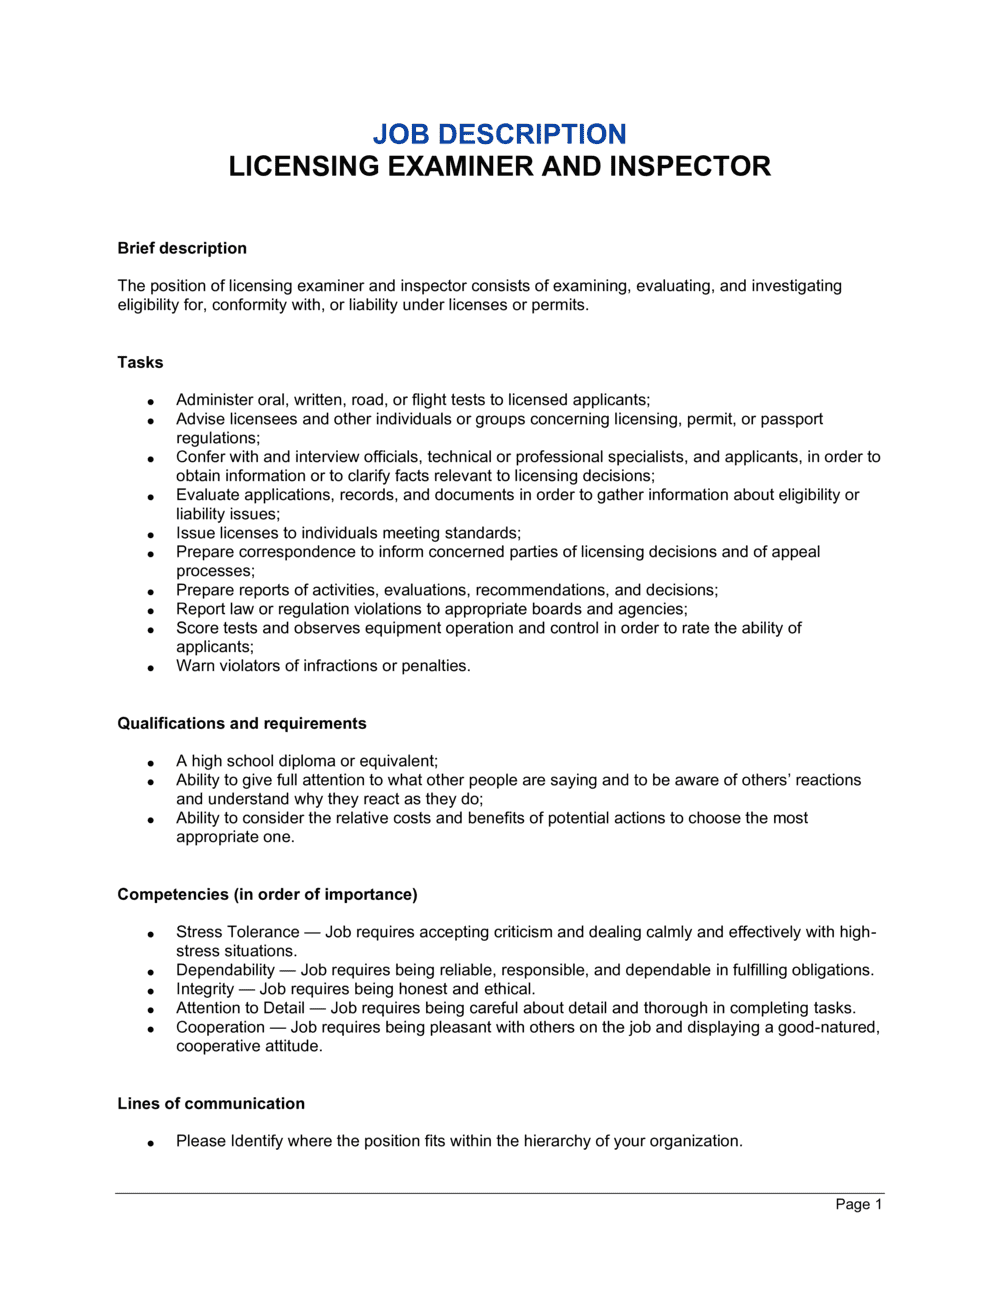 Business-in-a-Box's Licensing Examiner and Inspector Job Description Template